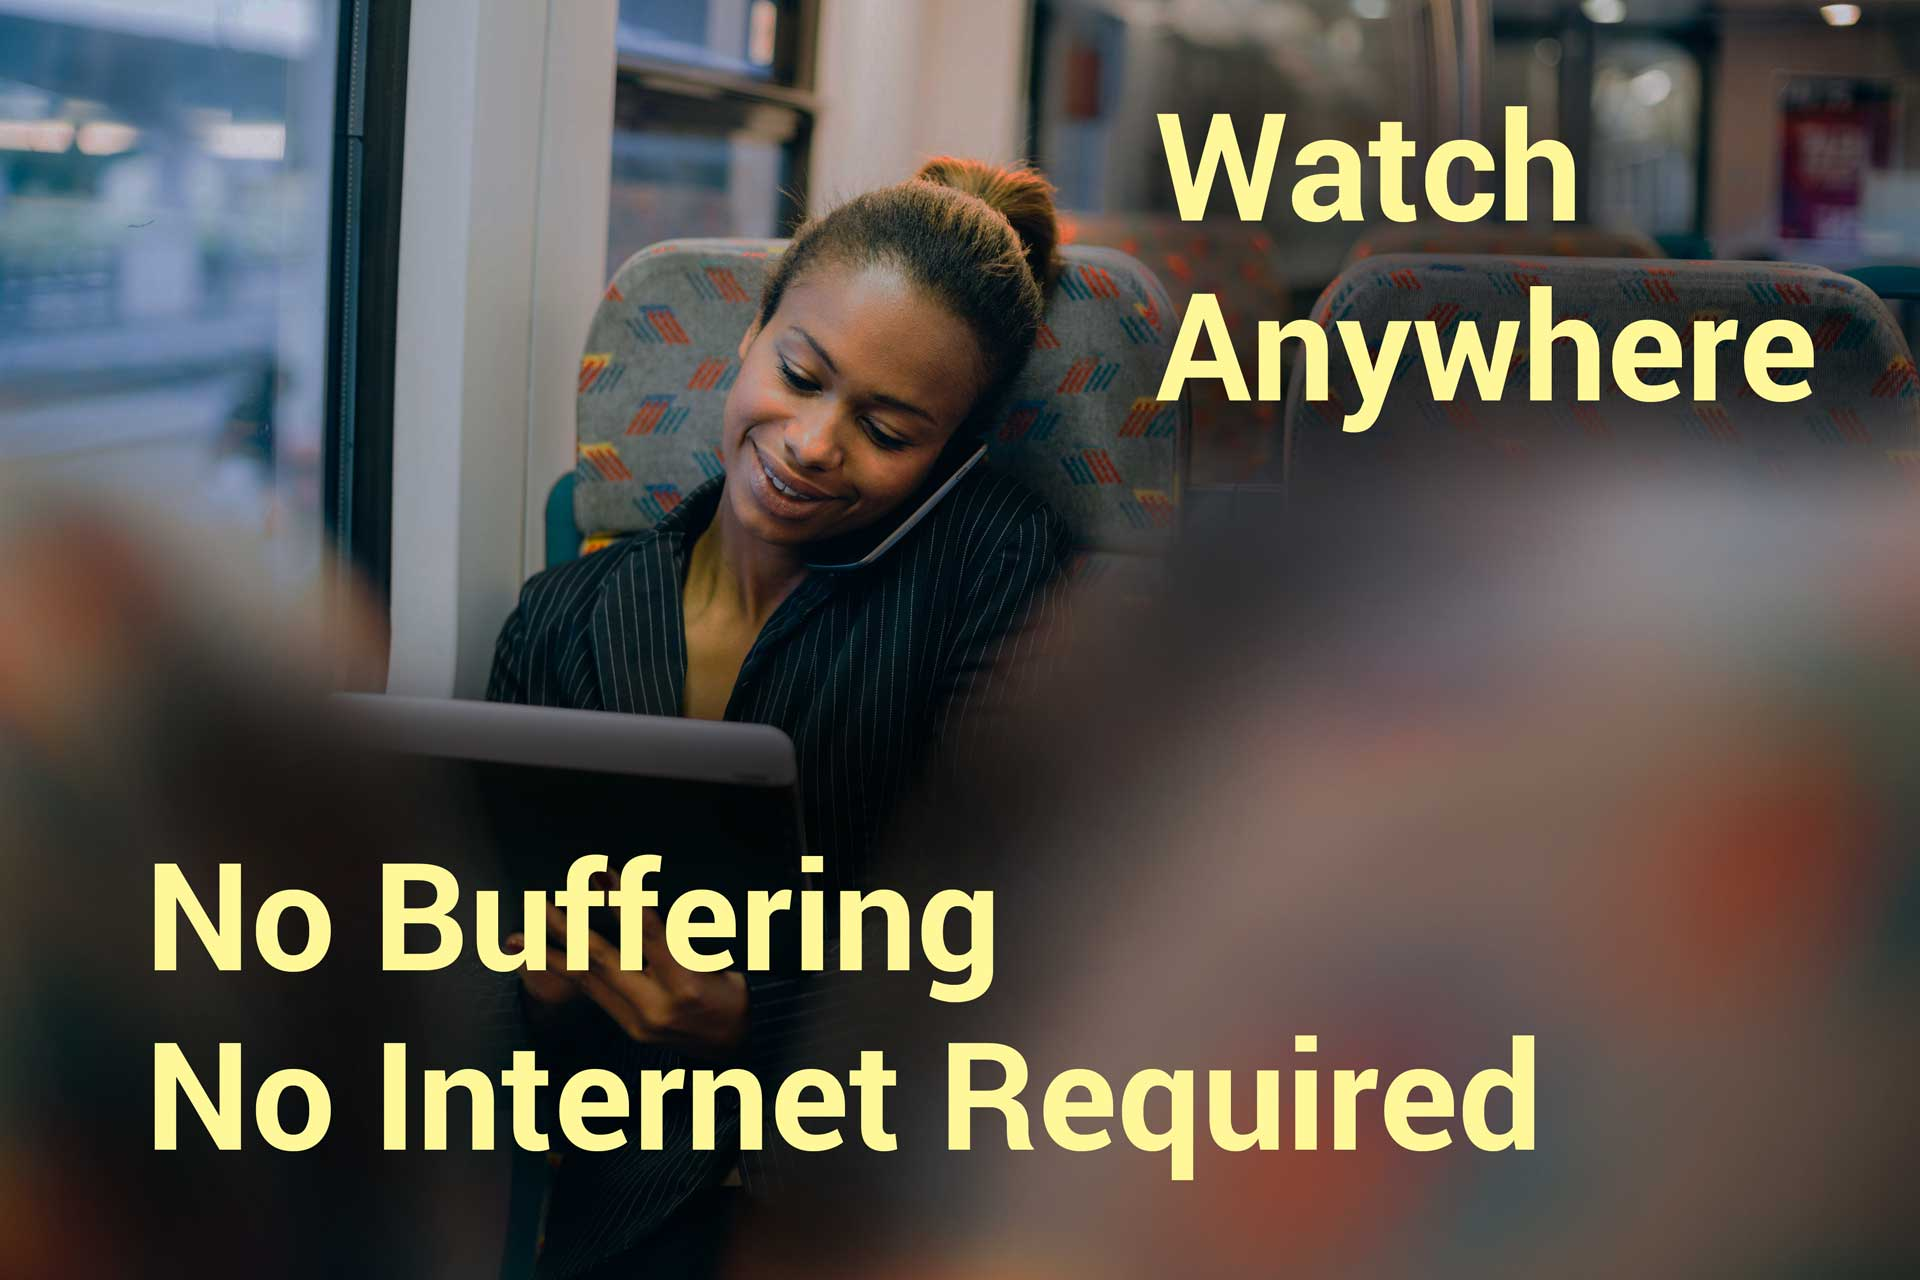 Watch anywhere. No internet connection required